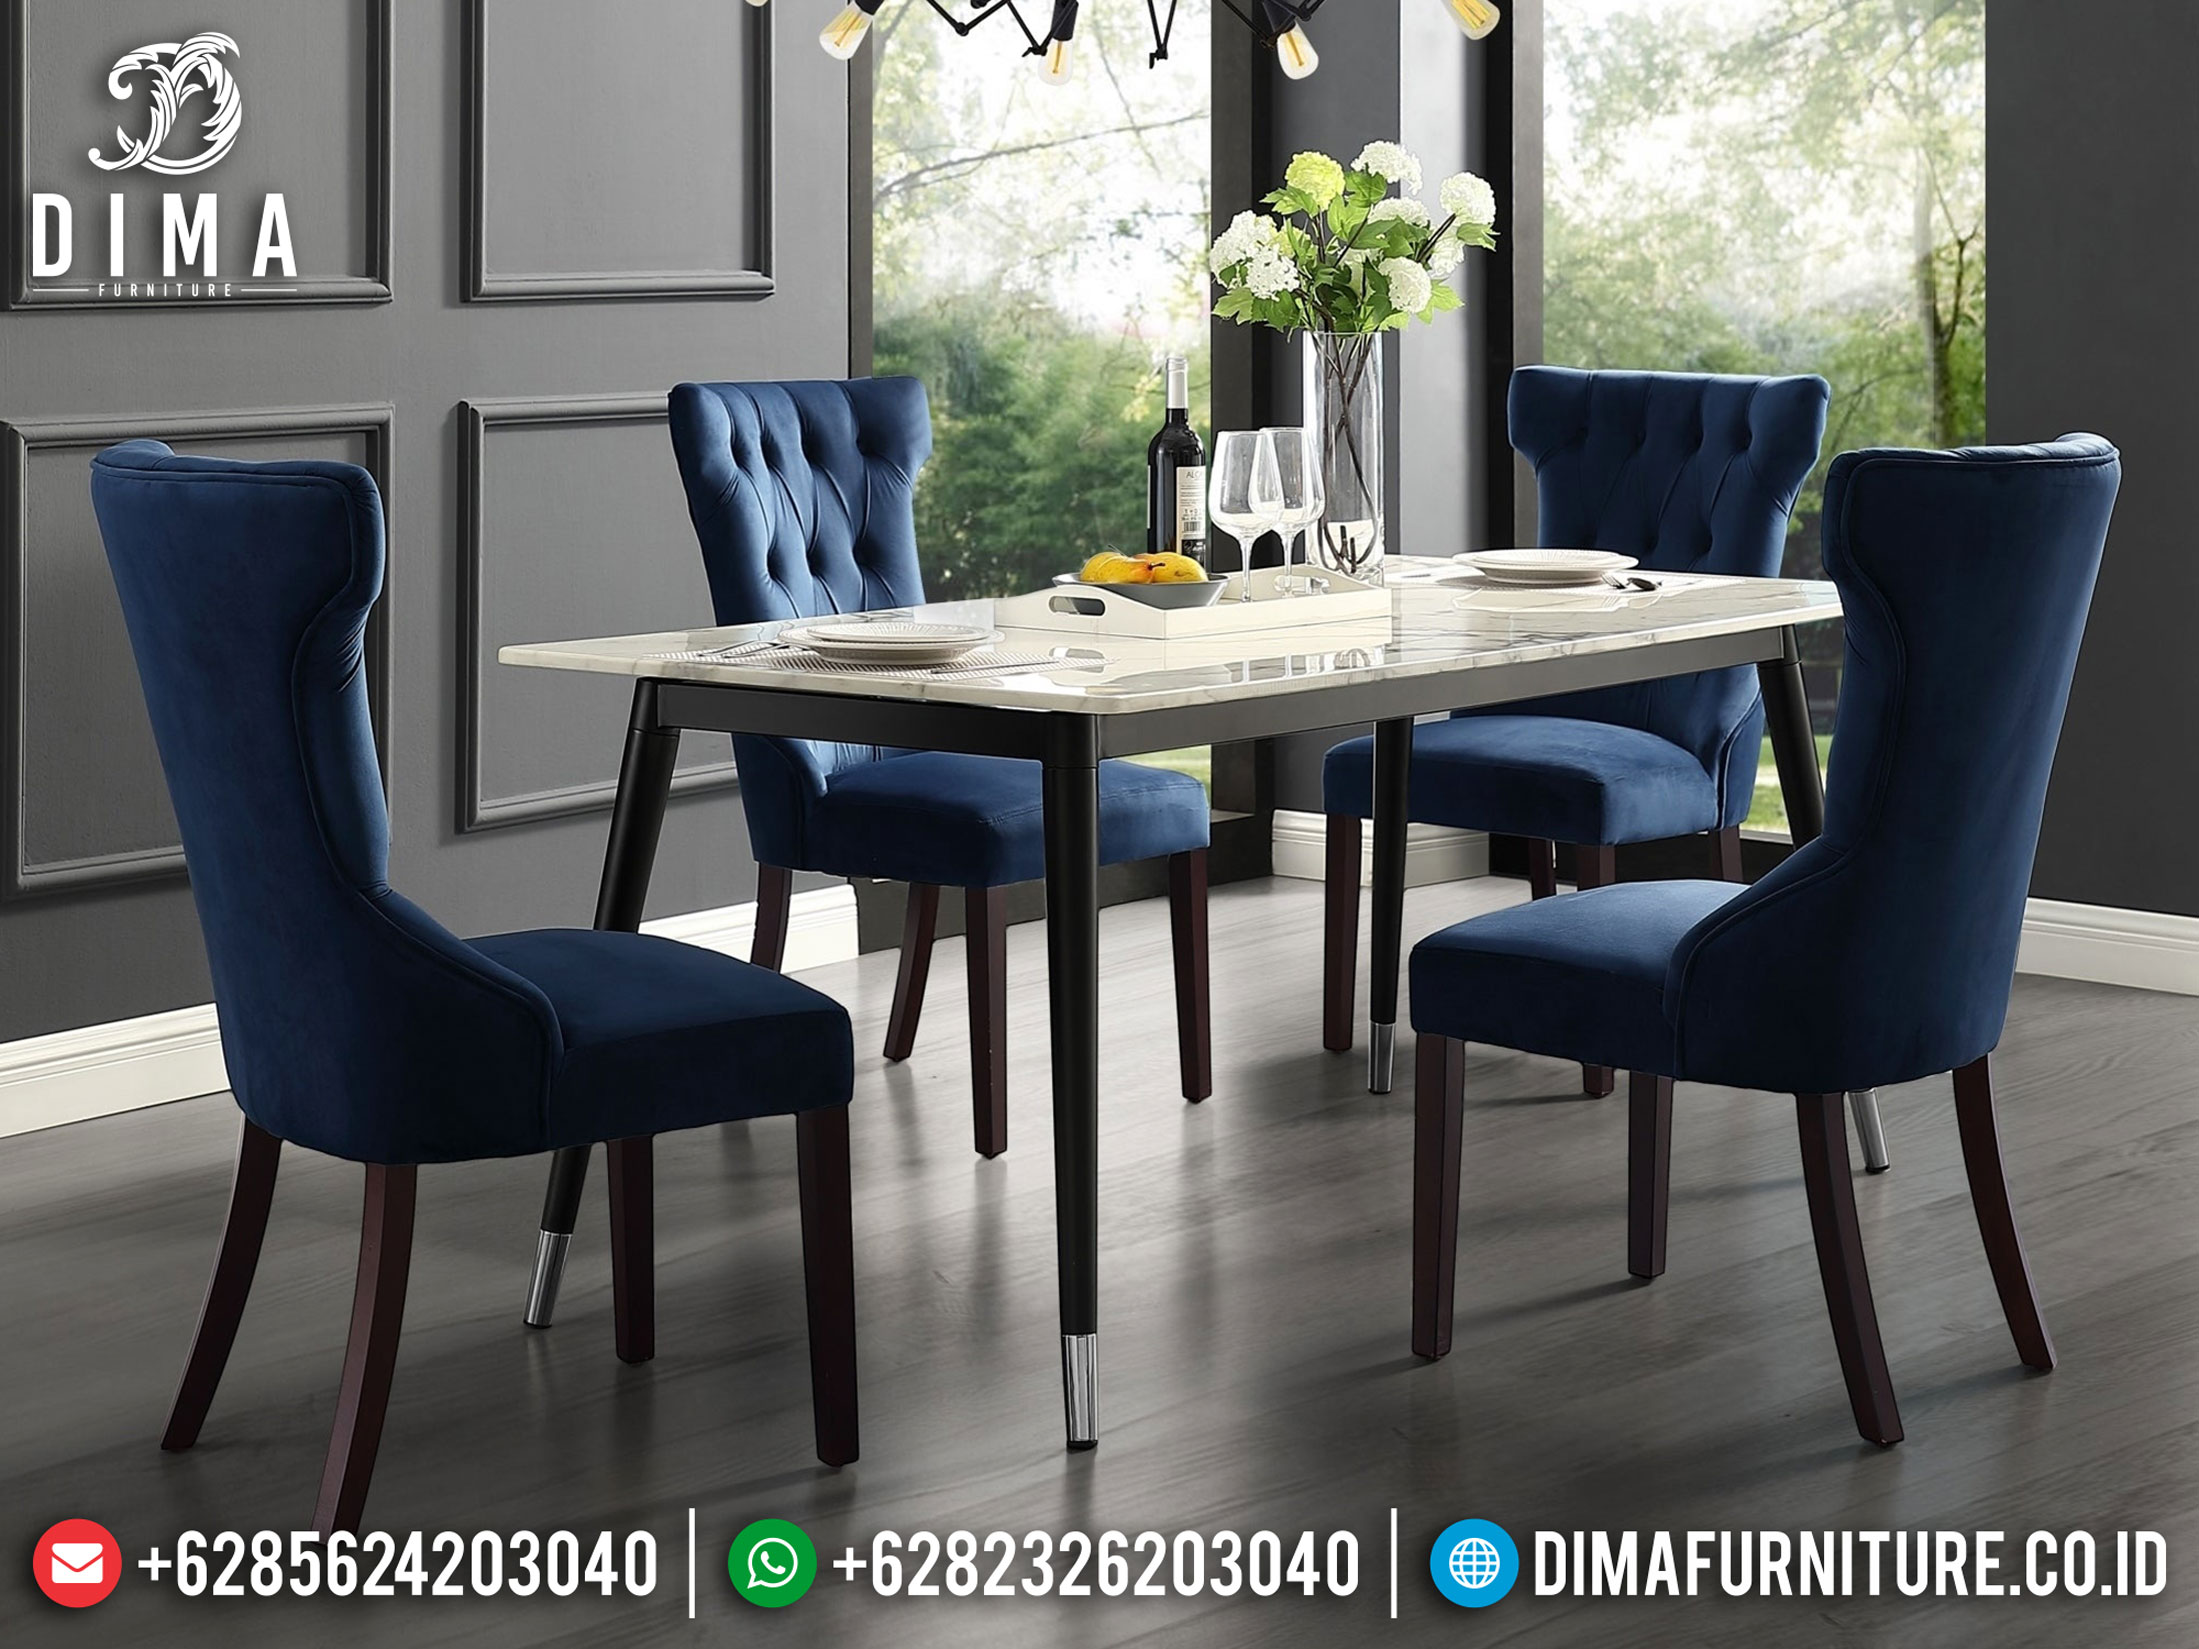 New Set Meja Makan Minimalis Modern Furniture Jepara Luxury ST-0958